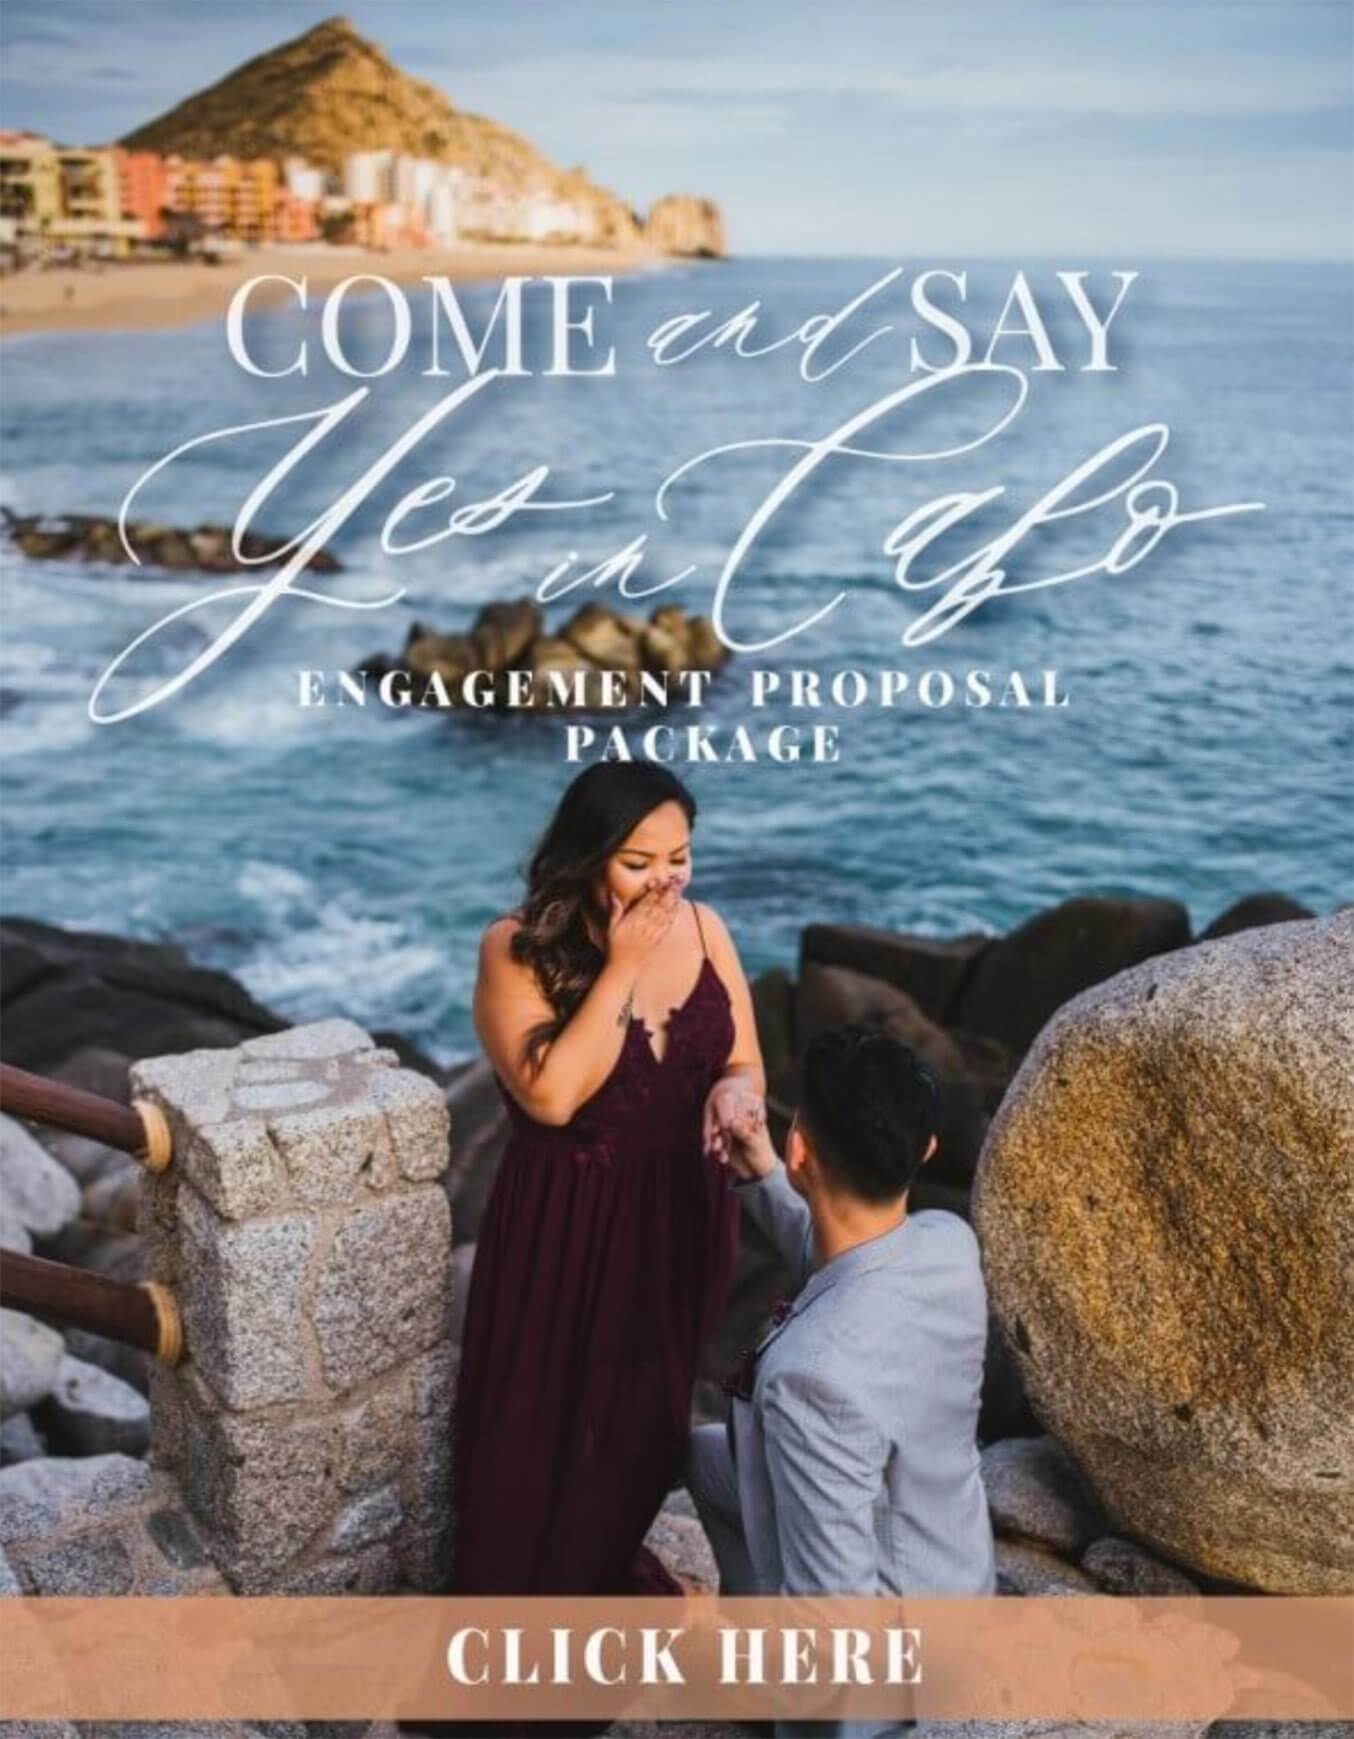 Los Cabos Wedding Planners